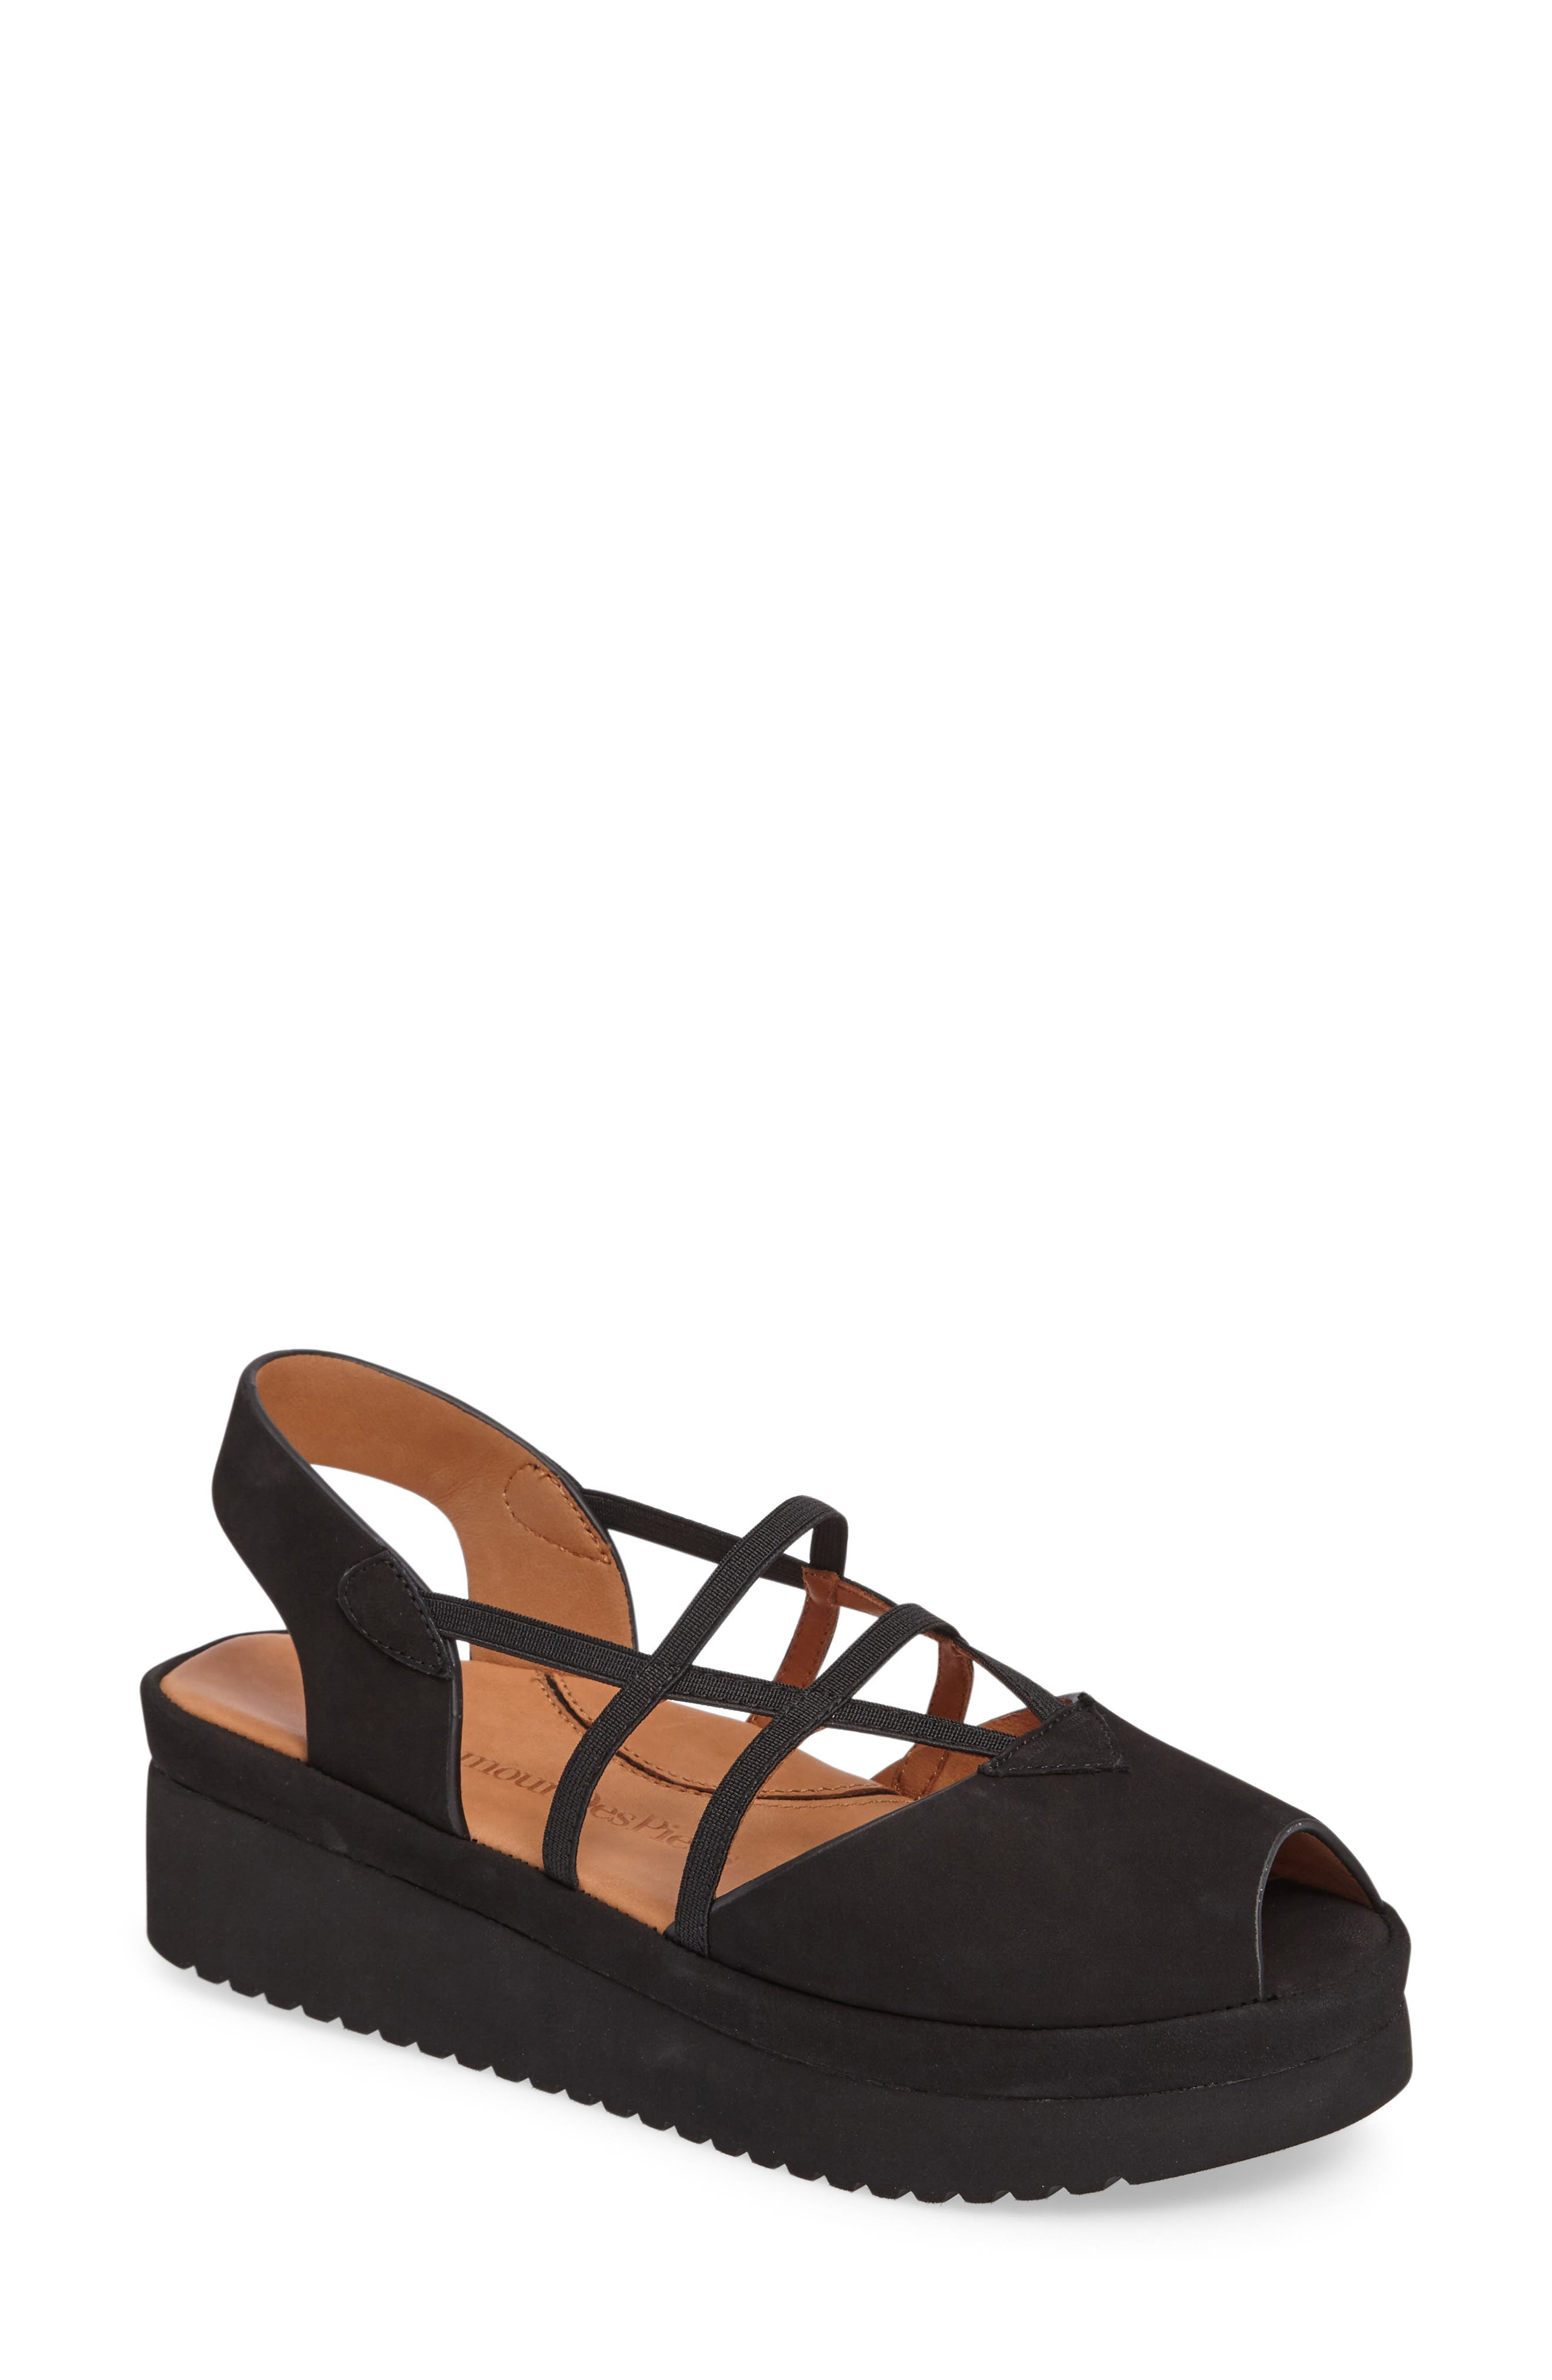 Adelais Platform Wedge Sandal,                             Main thumbnail 1, color,                             BLACK NUBUCK LEATHER